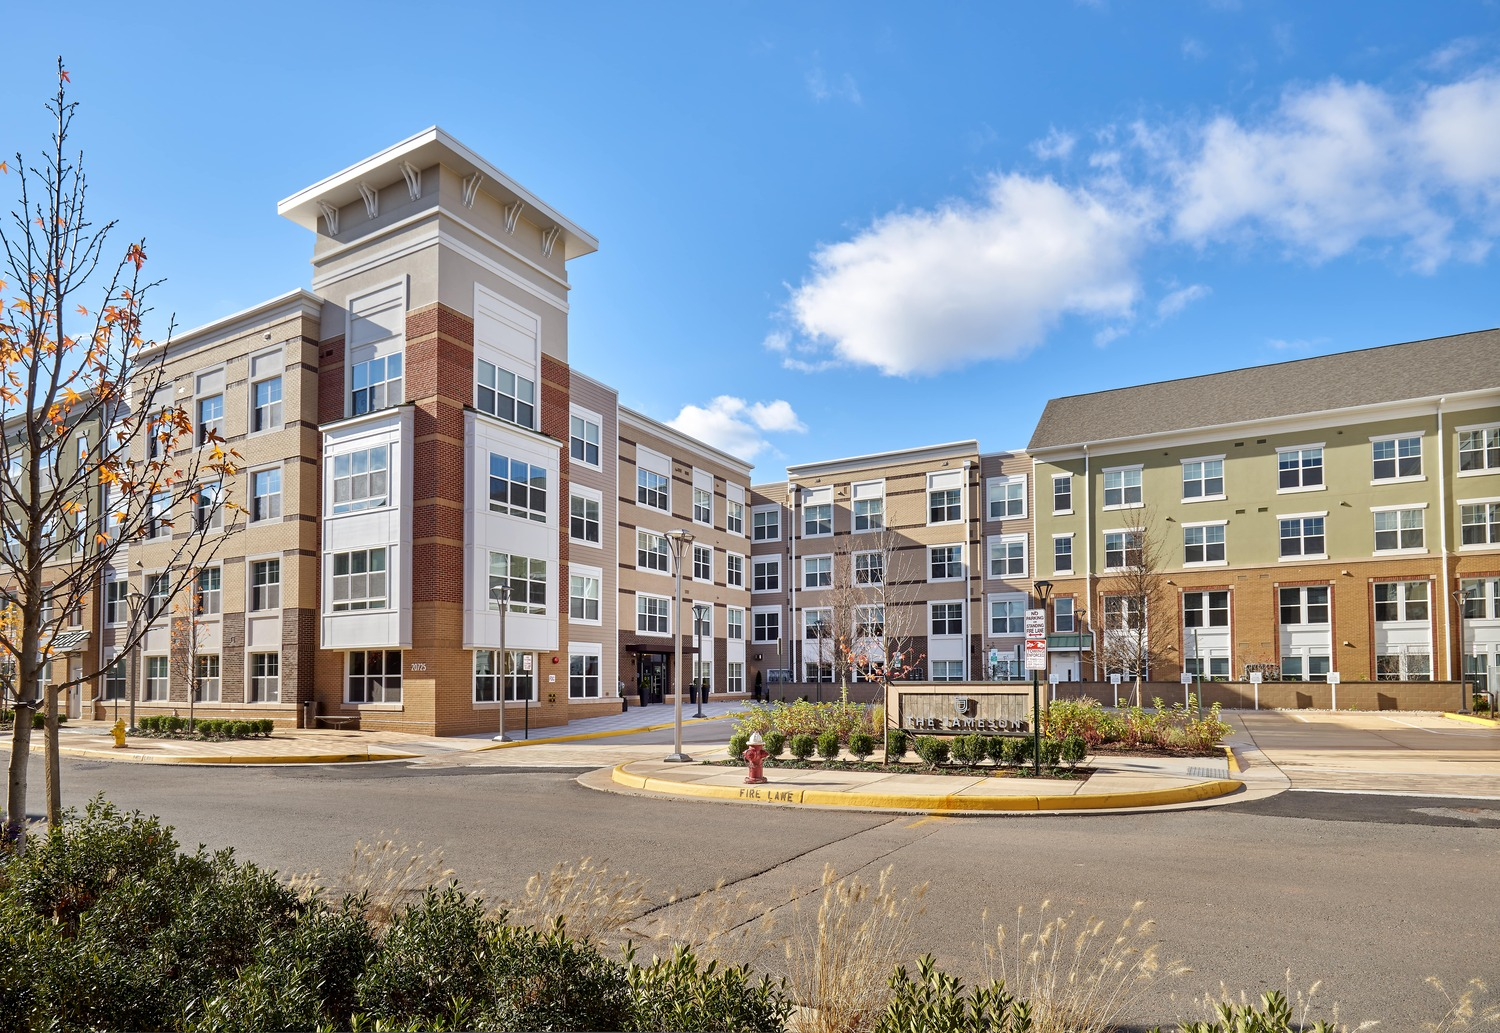 CBG builds The Jameson at Kincora, a 333-Unit Market-Rate Community in Master Development in Sterling, VA - Image #1